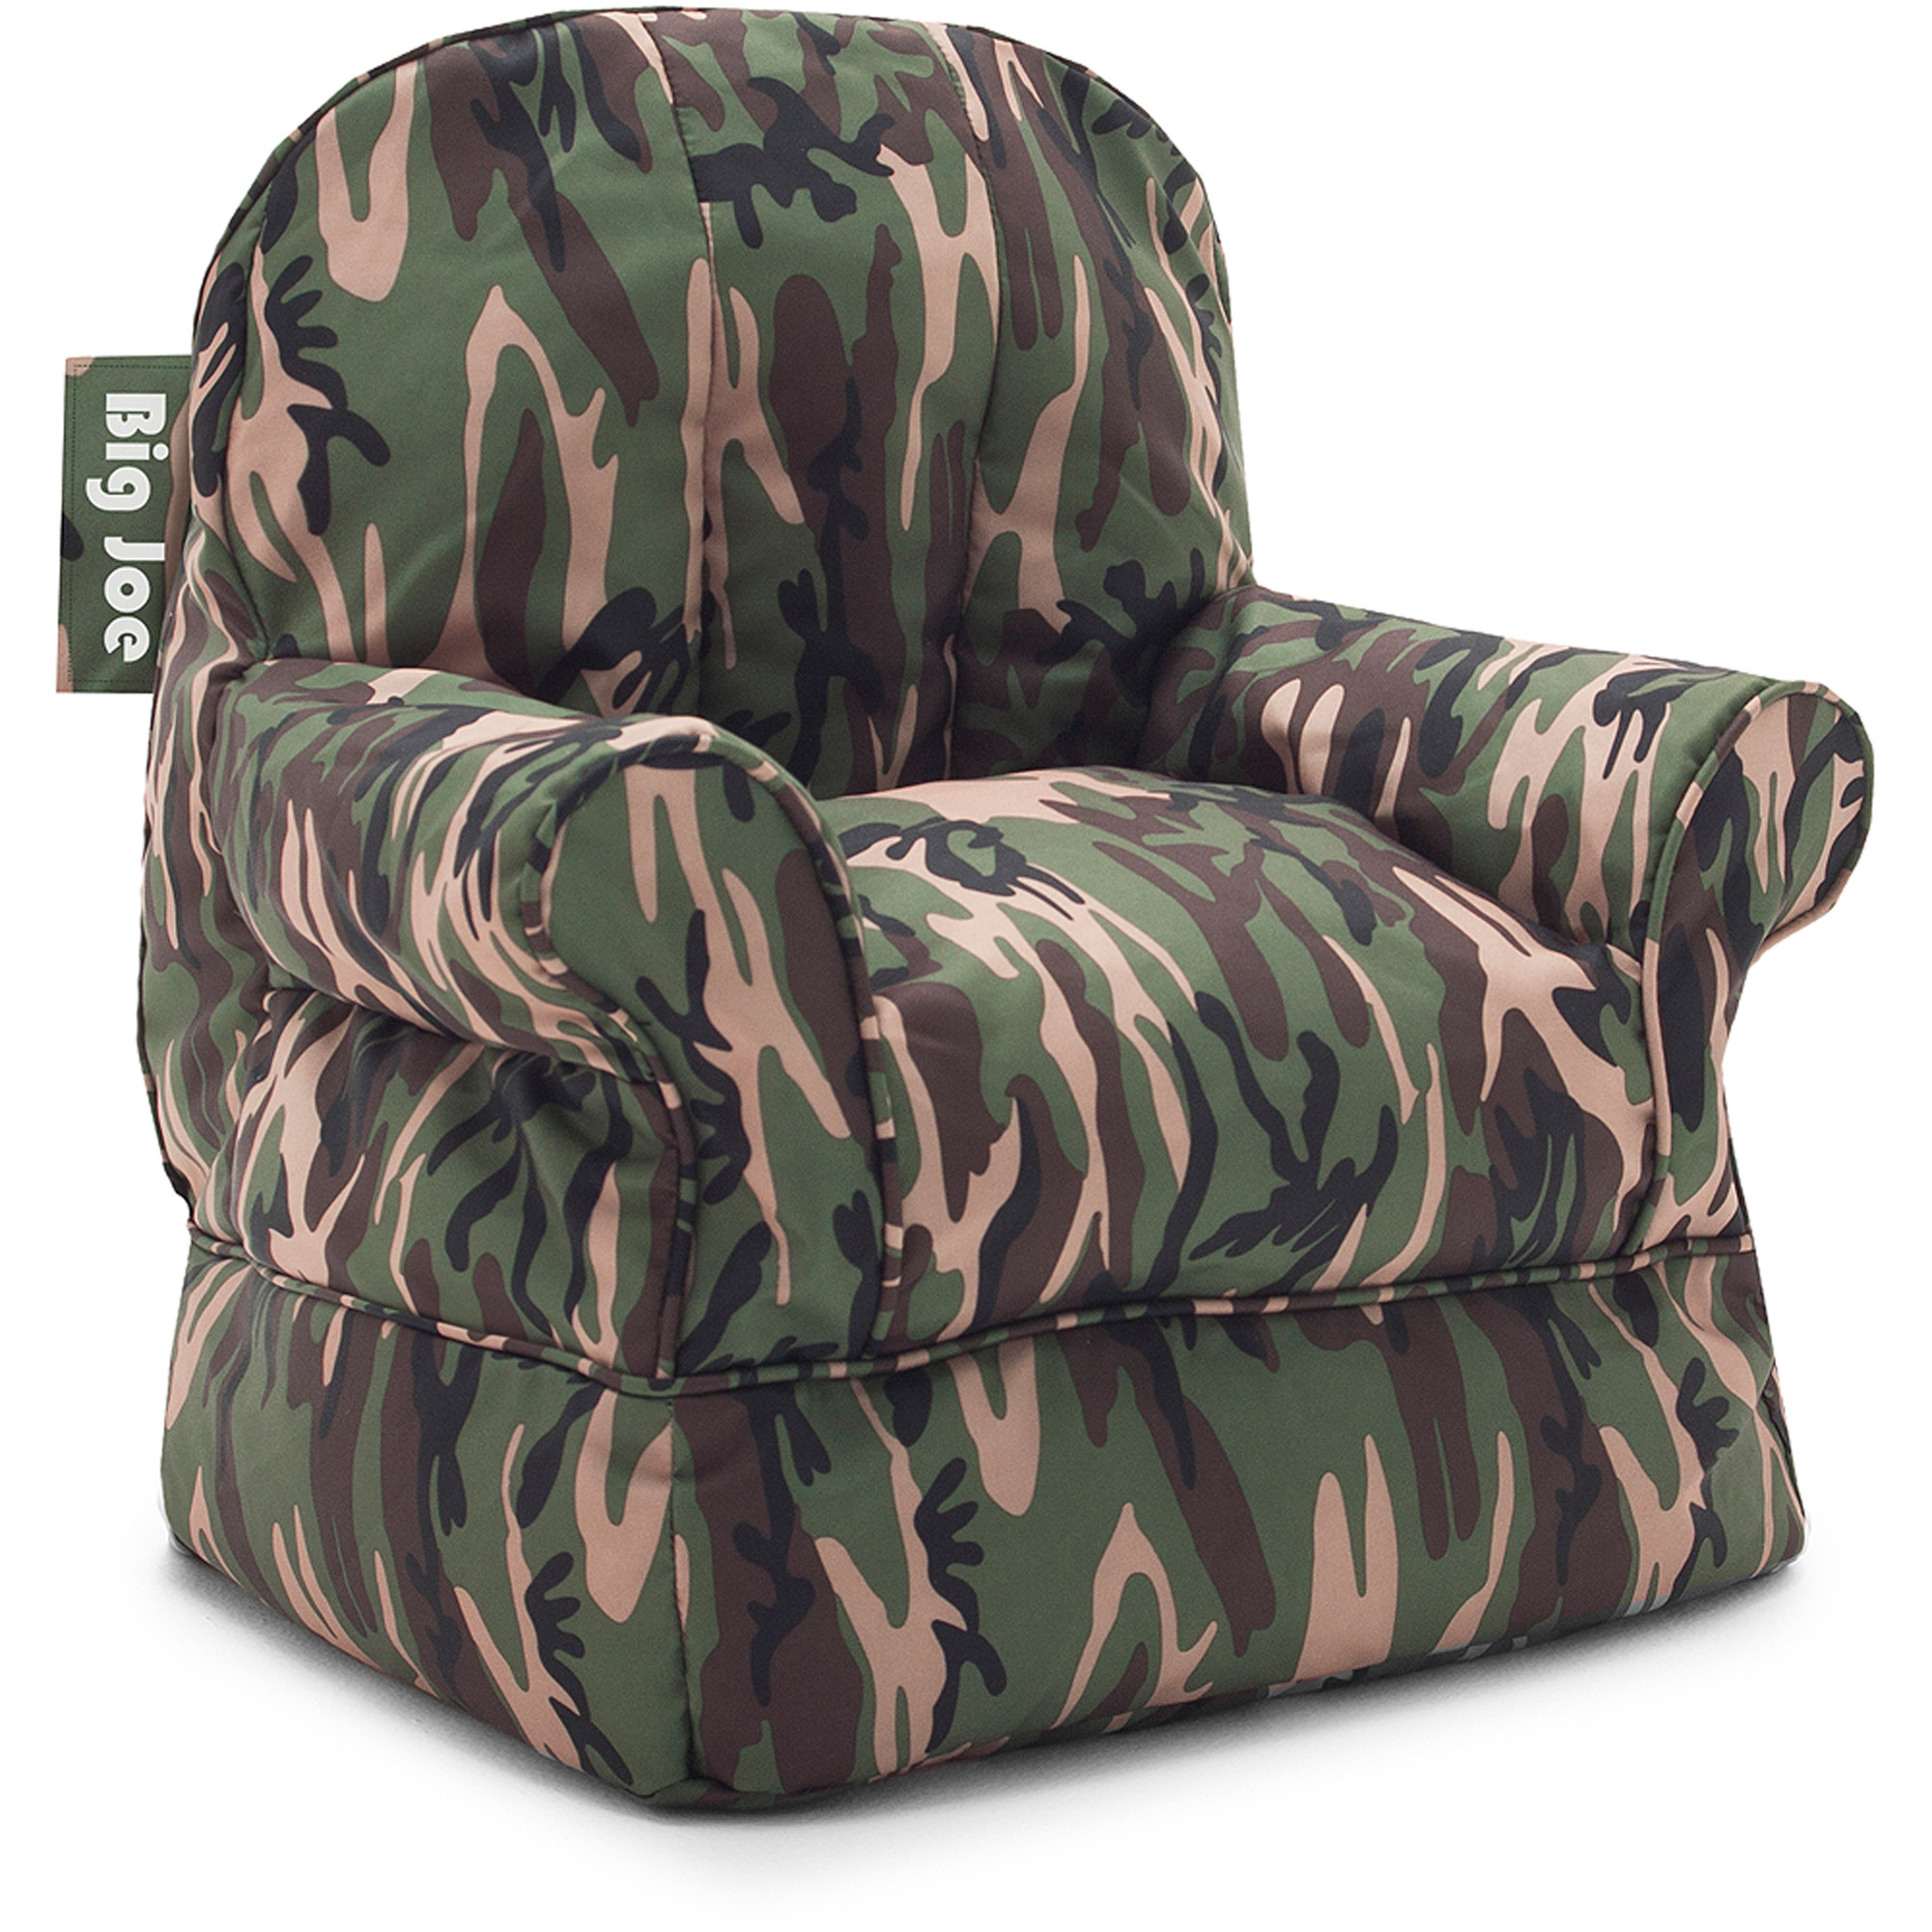 Charmant Big Joe Bubs Bean Bag Chair   Walmart.com